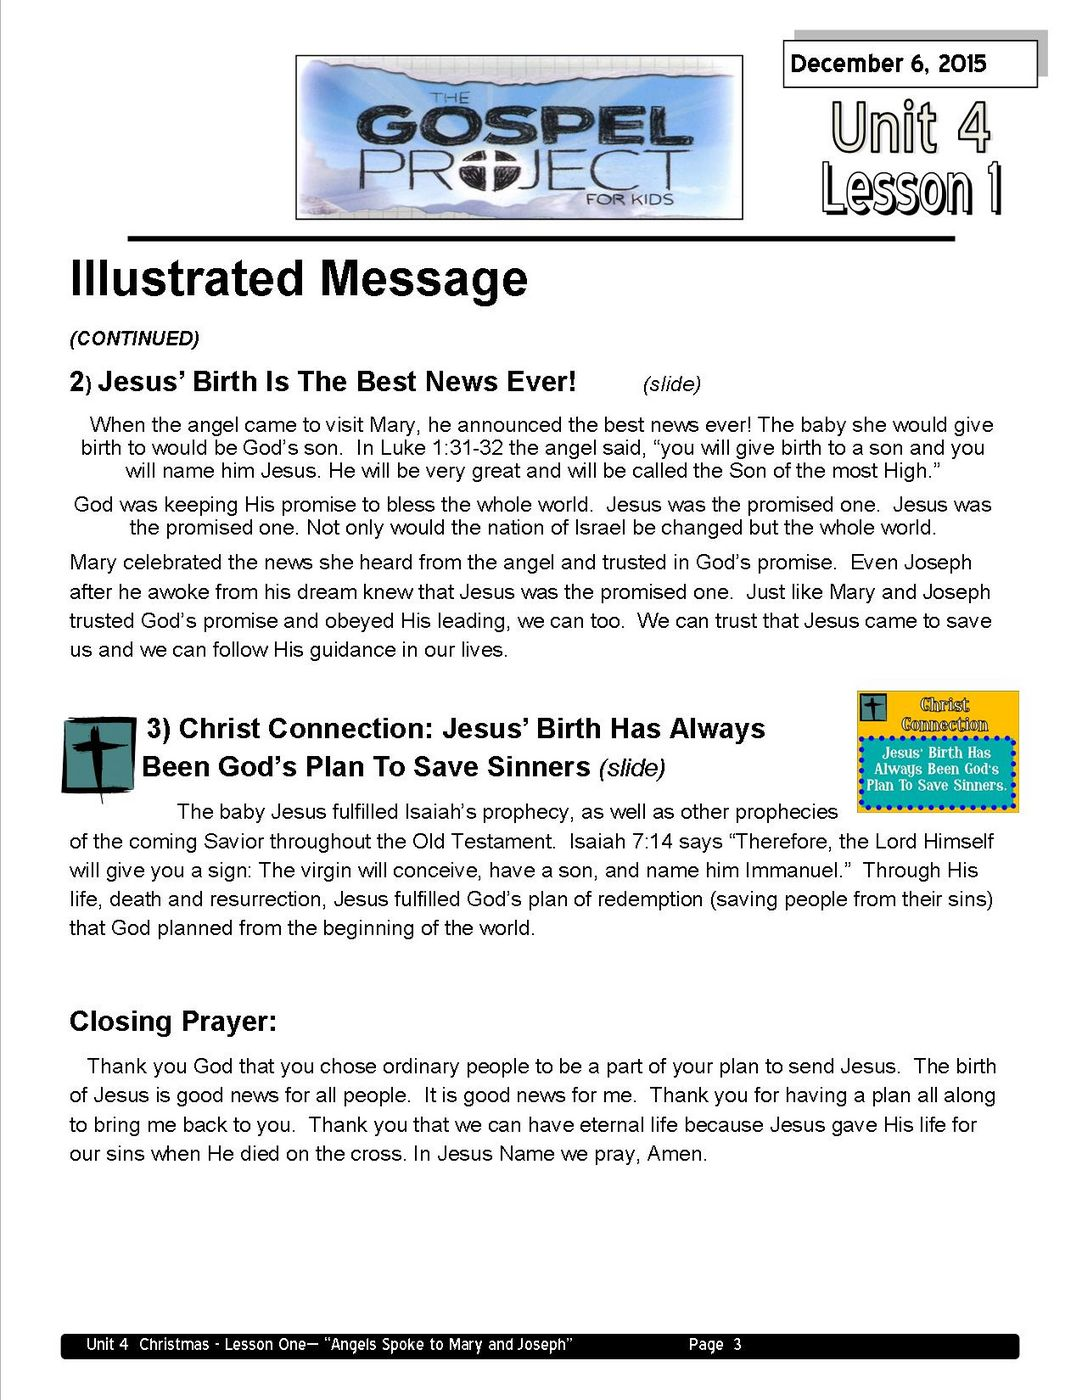 Lead teacher L1 - Angels Spoke to Mary and Joseph page 3